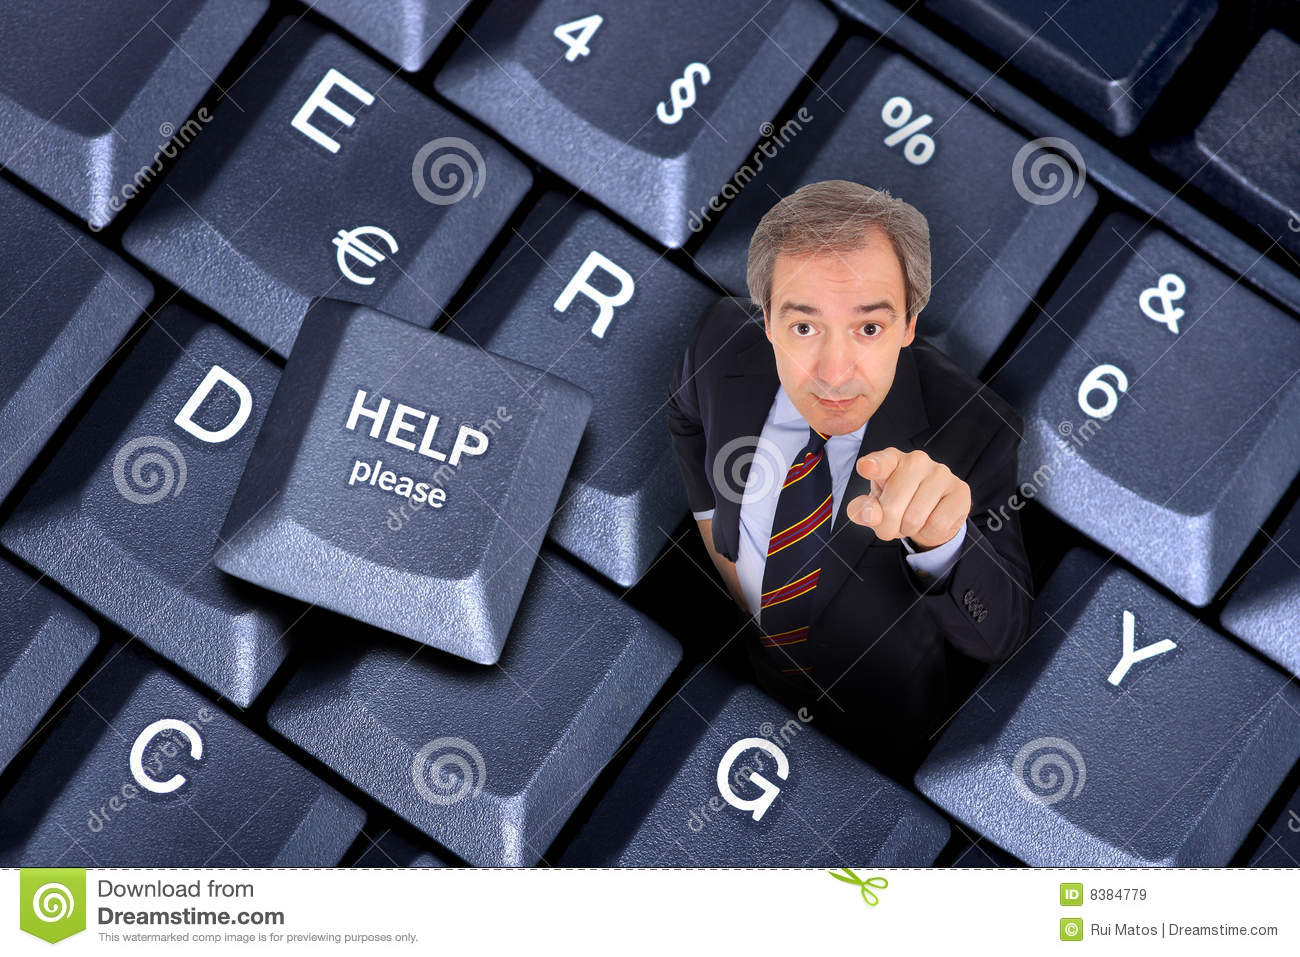 businessman inside a laptop keyboard hole with a business solution ...: https://www.dreamstime.com/royalty-free-stock-images-business...